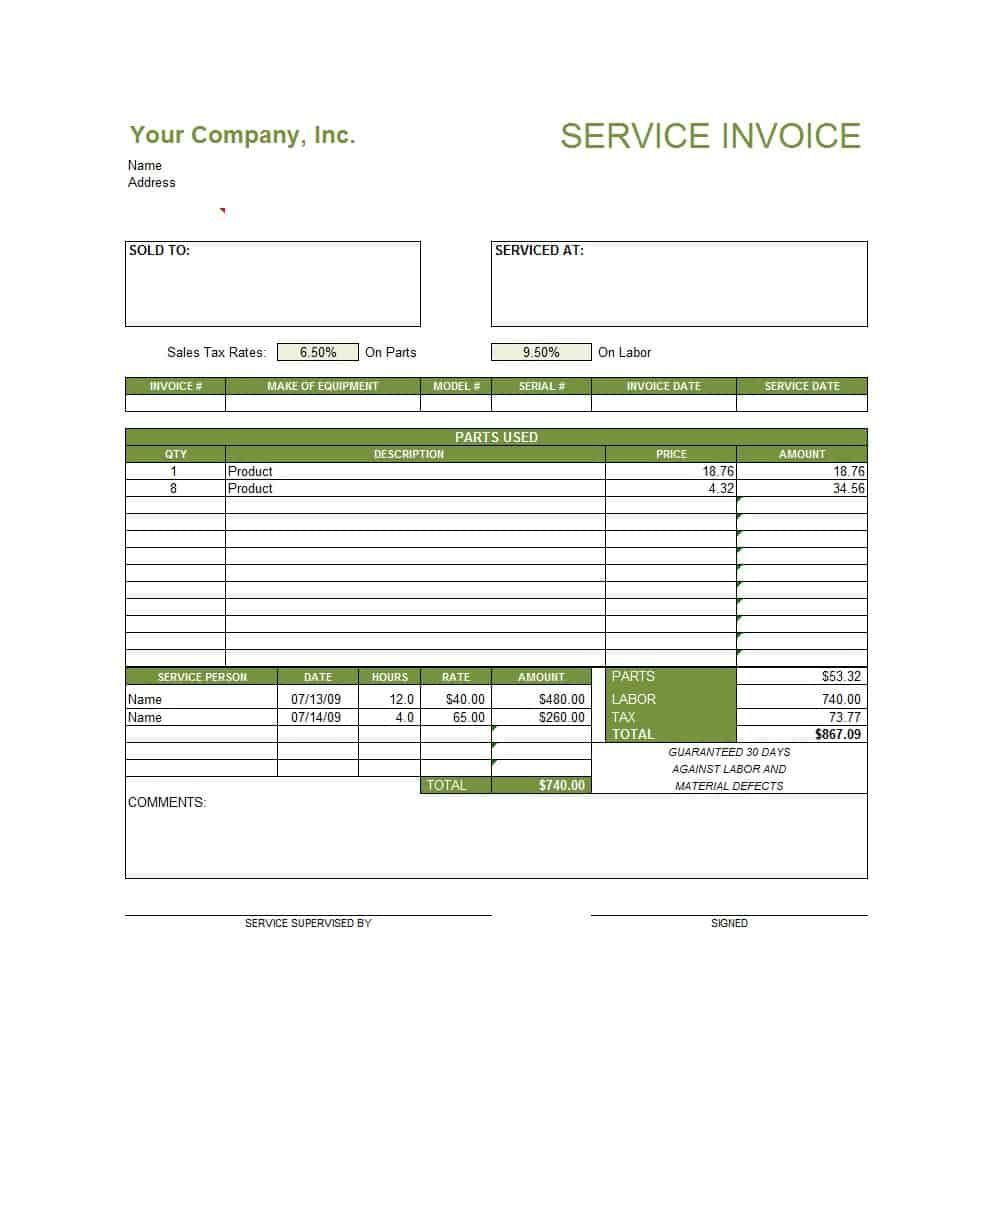 003 Excellent Service Invoice Template Free Highest Clarity  Rendered Word Auto DownloadFull